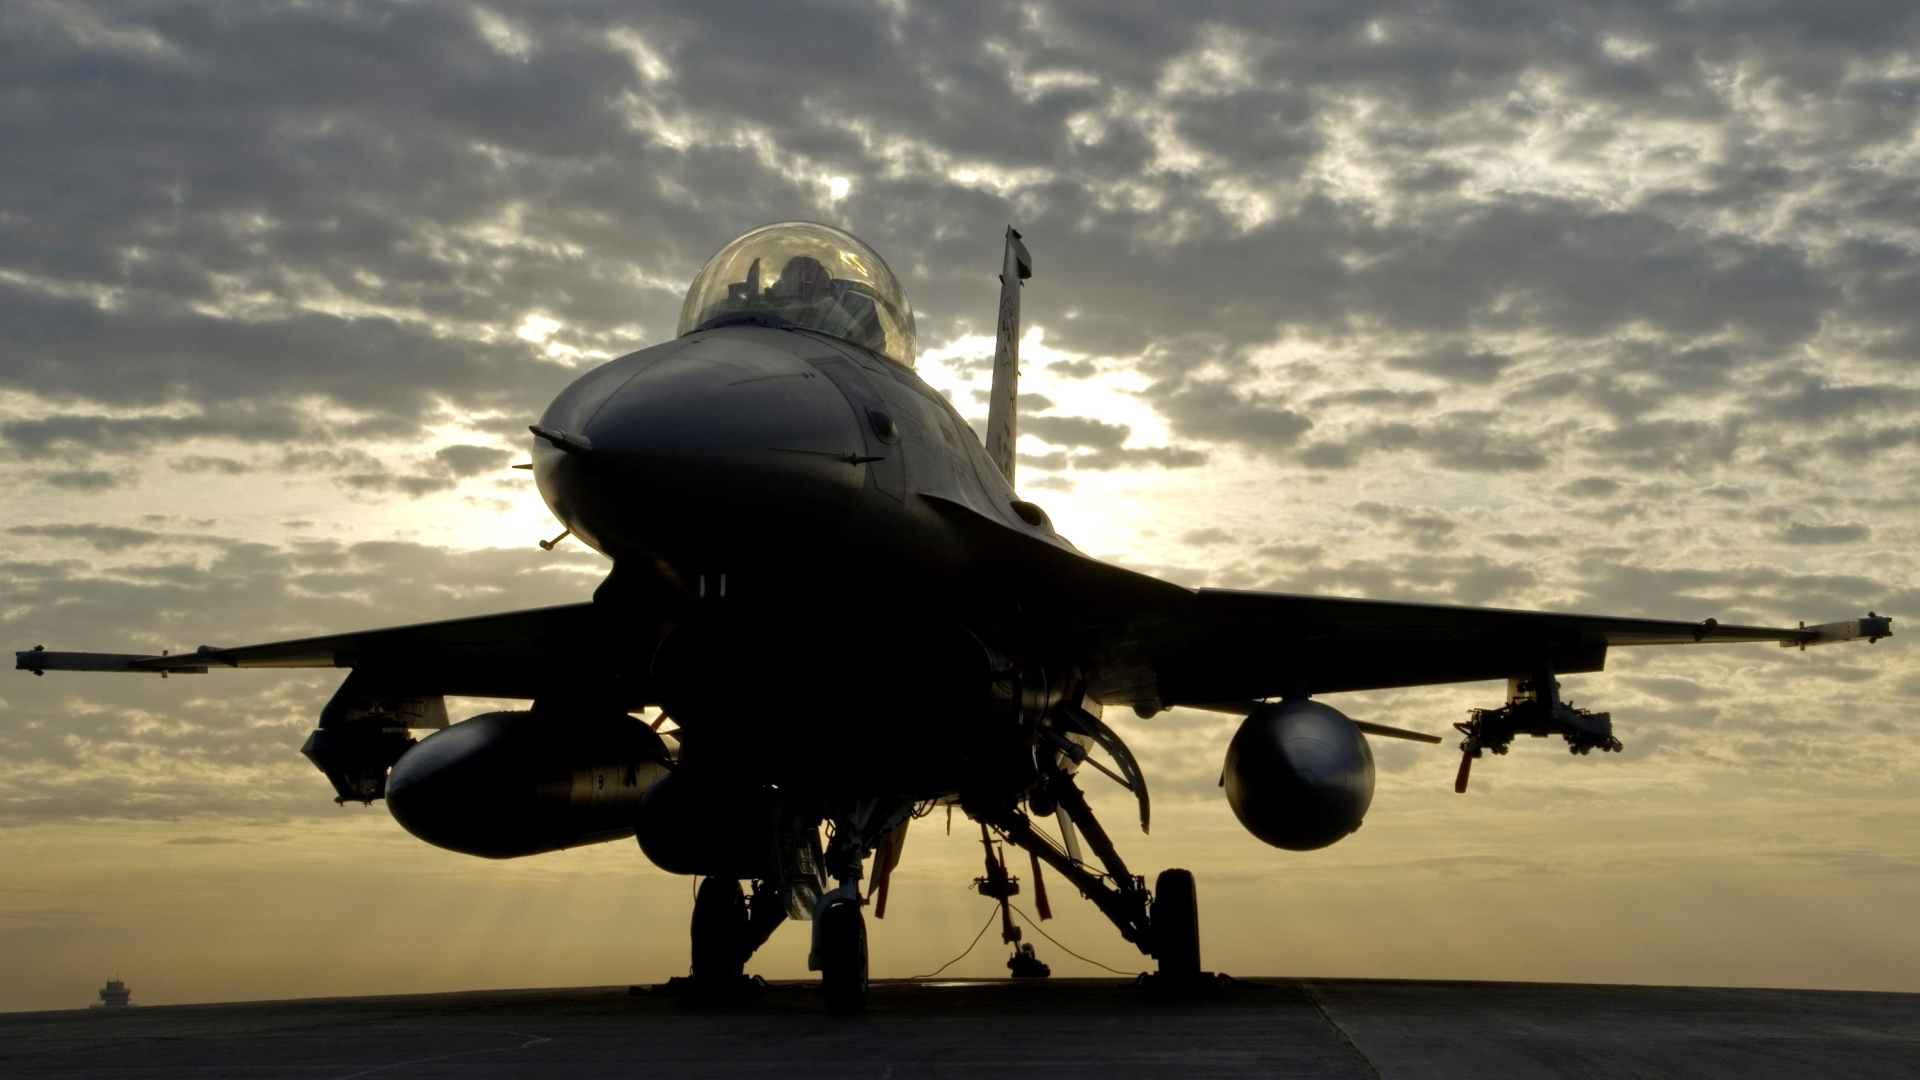 General Dynamics F-16 Fighting Falcon HD Wallpaper